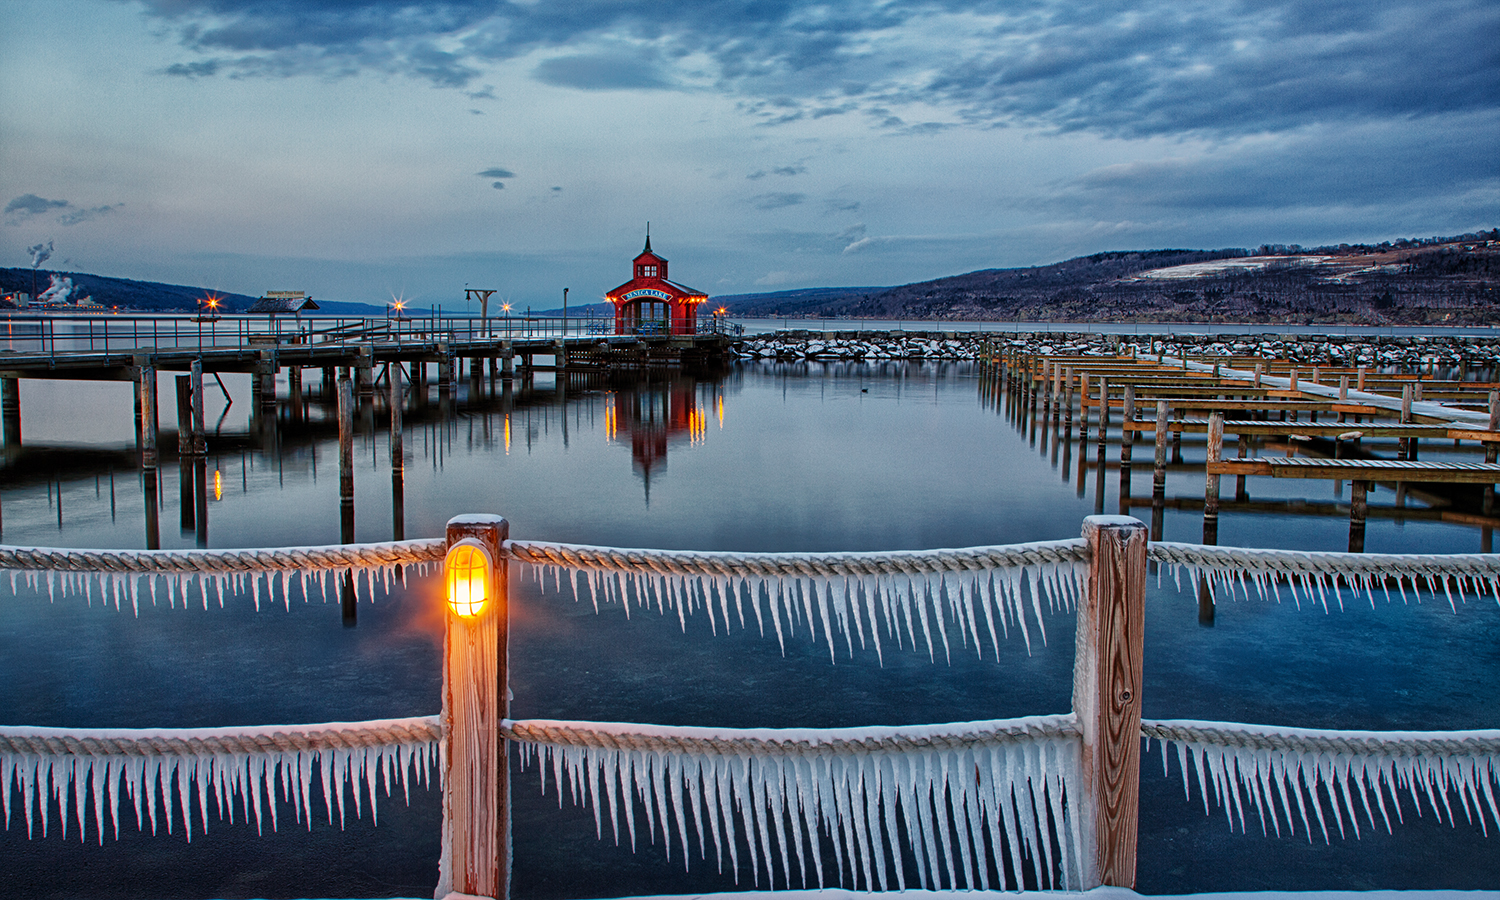 Icicles adorn the rope railings at Watkins Glen Harbor.